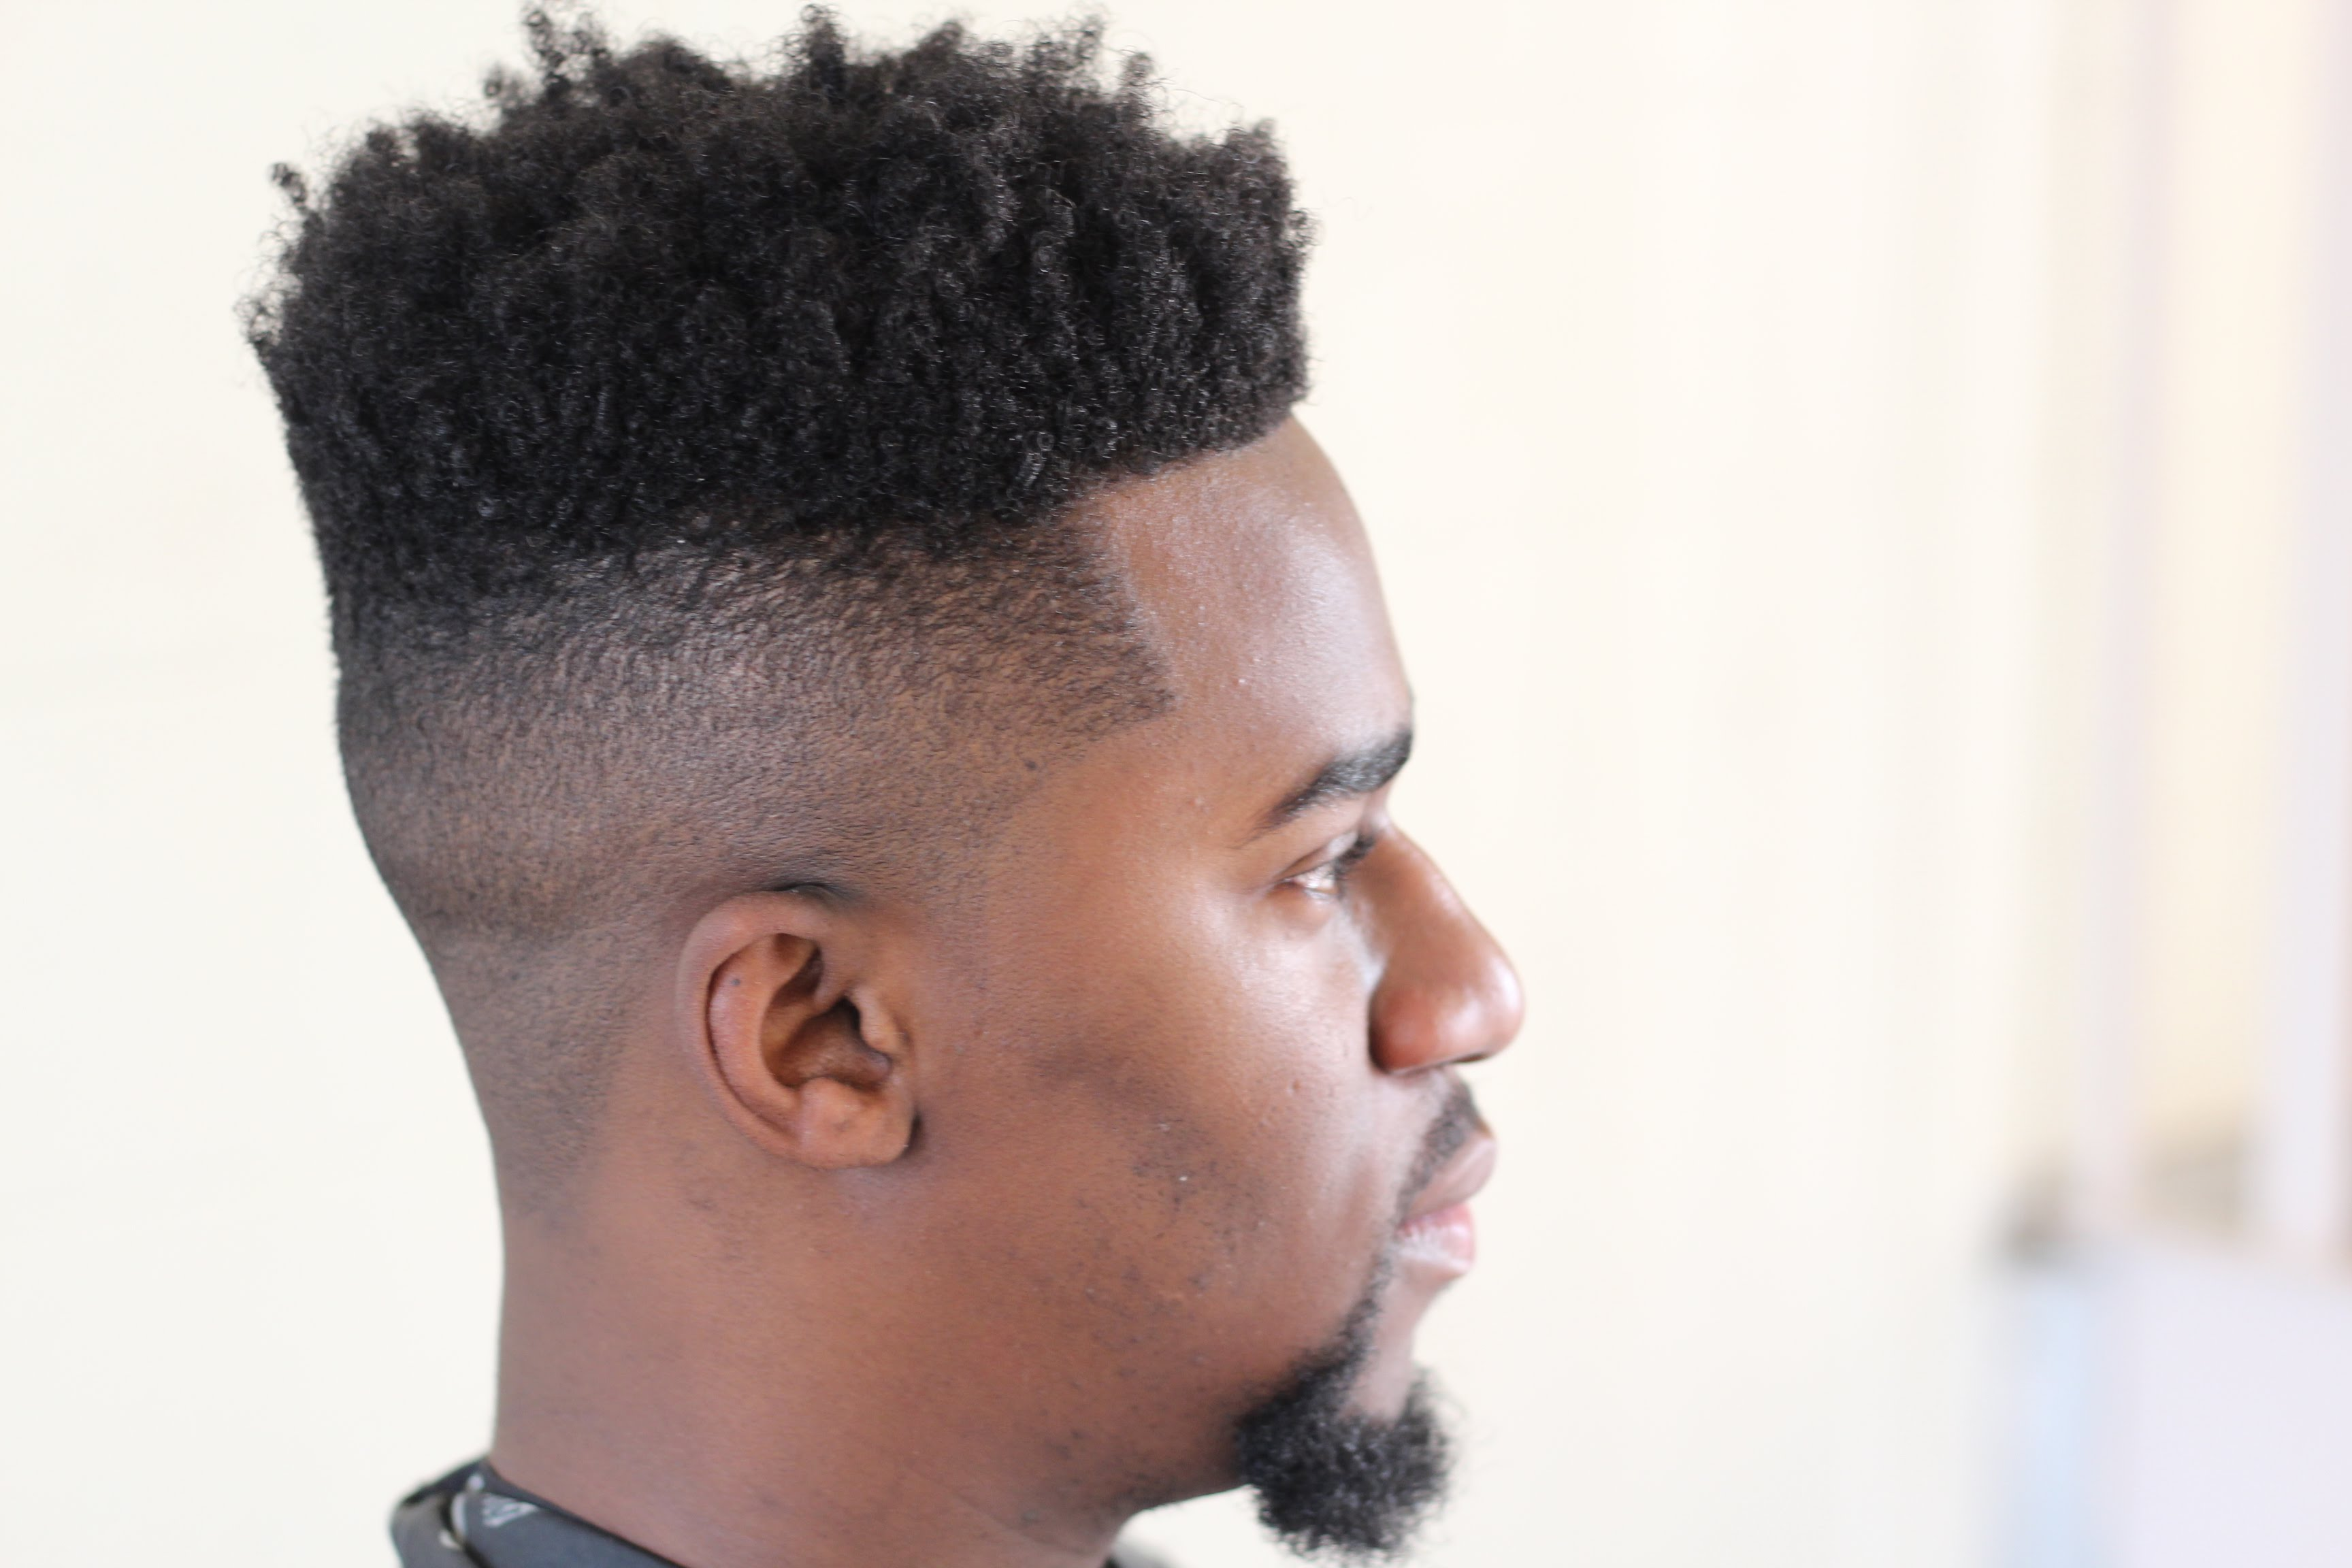 Taper Fade Haircut | Bald Fade | 5 Fade Haircut